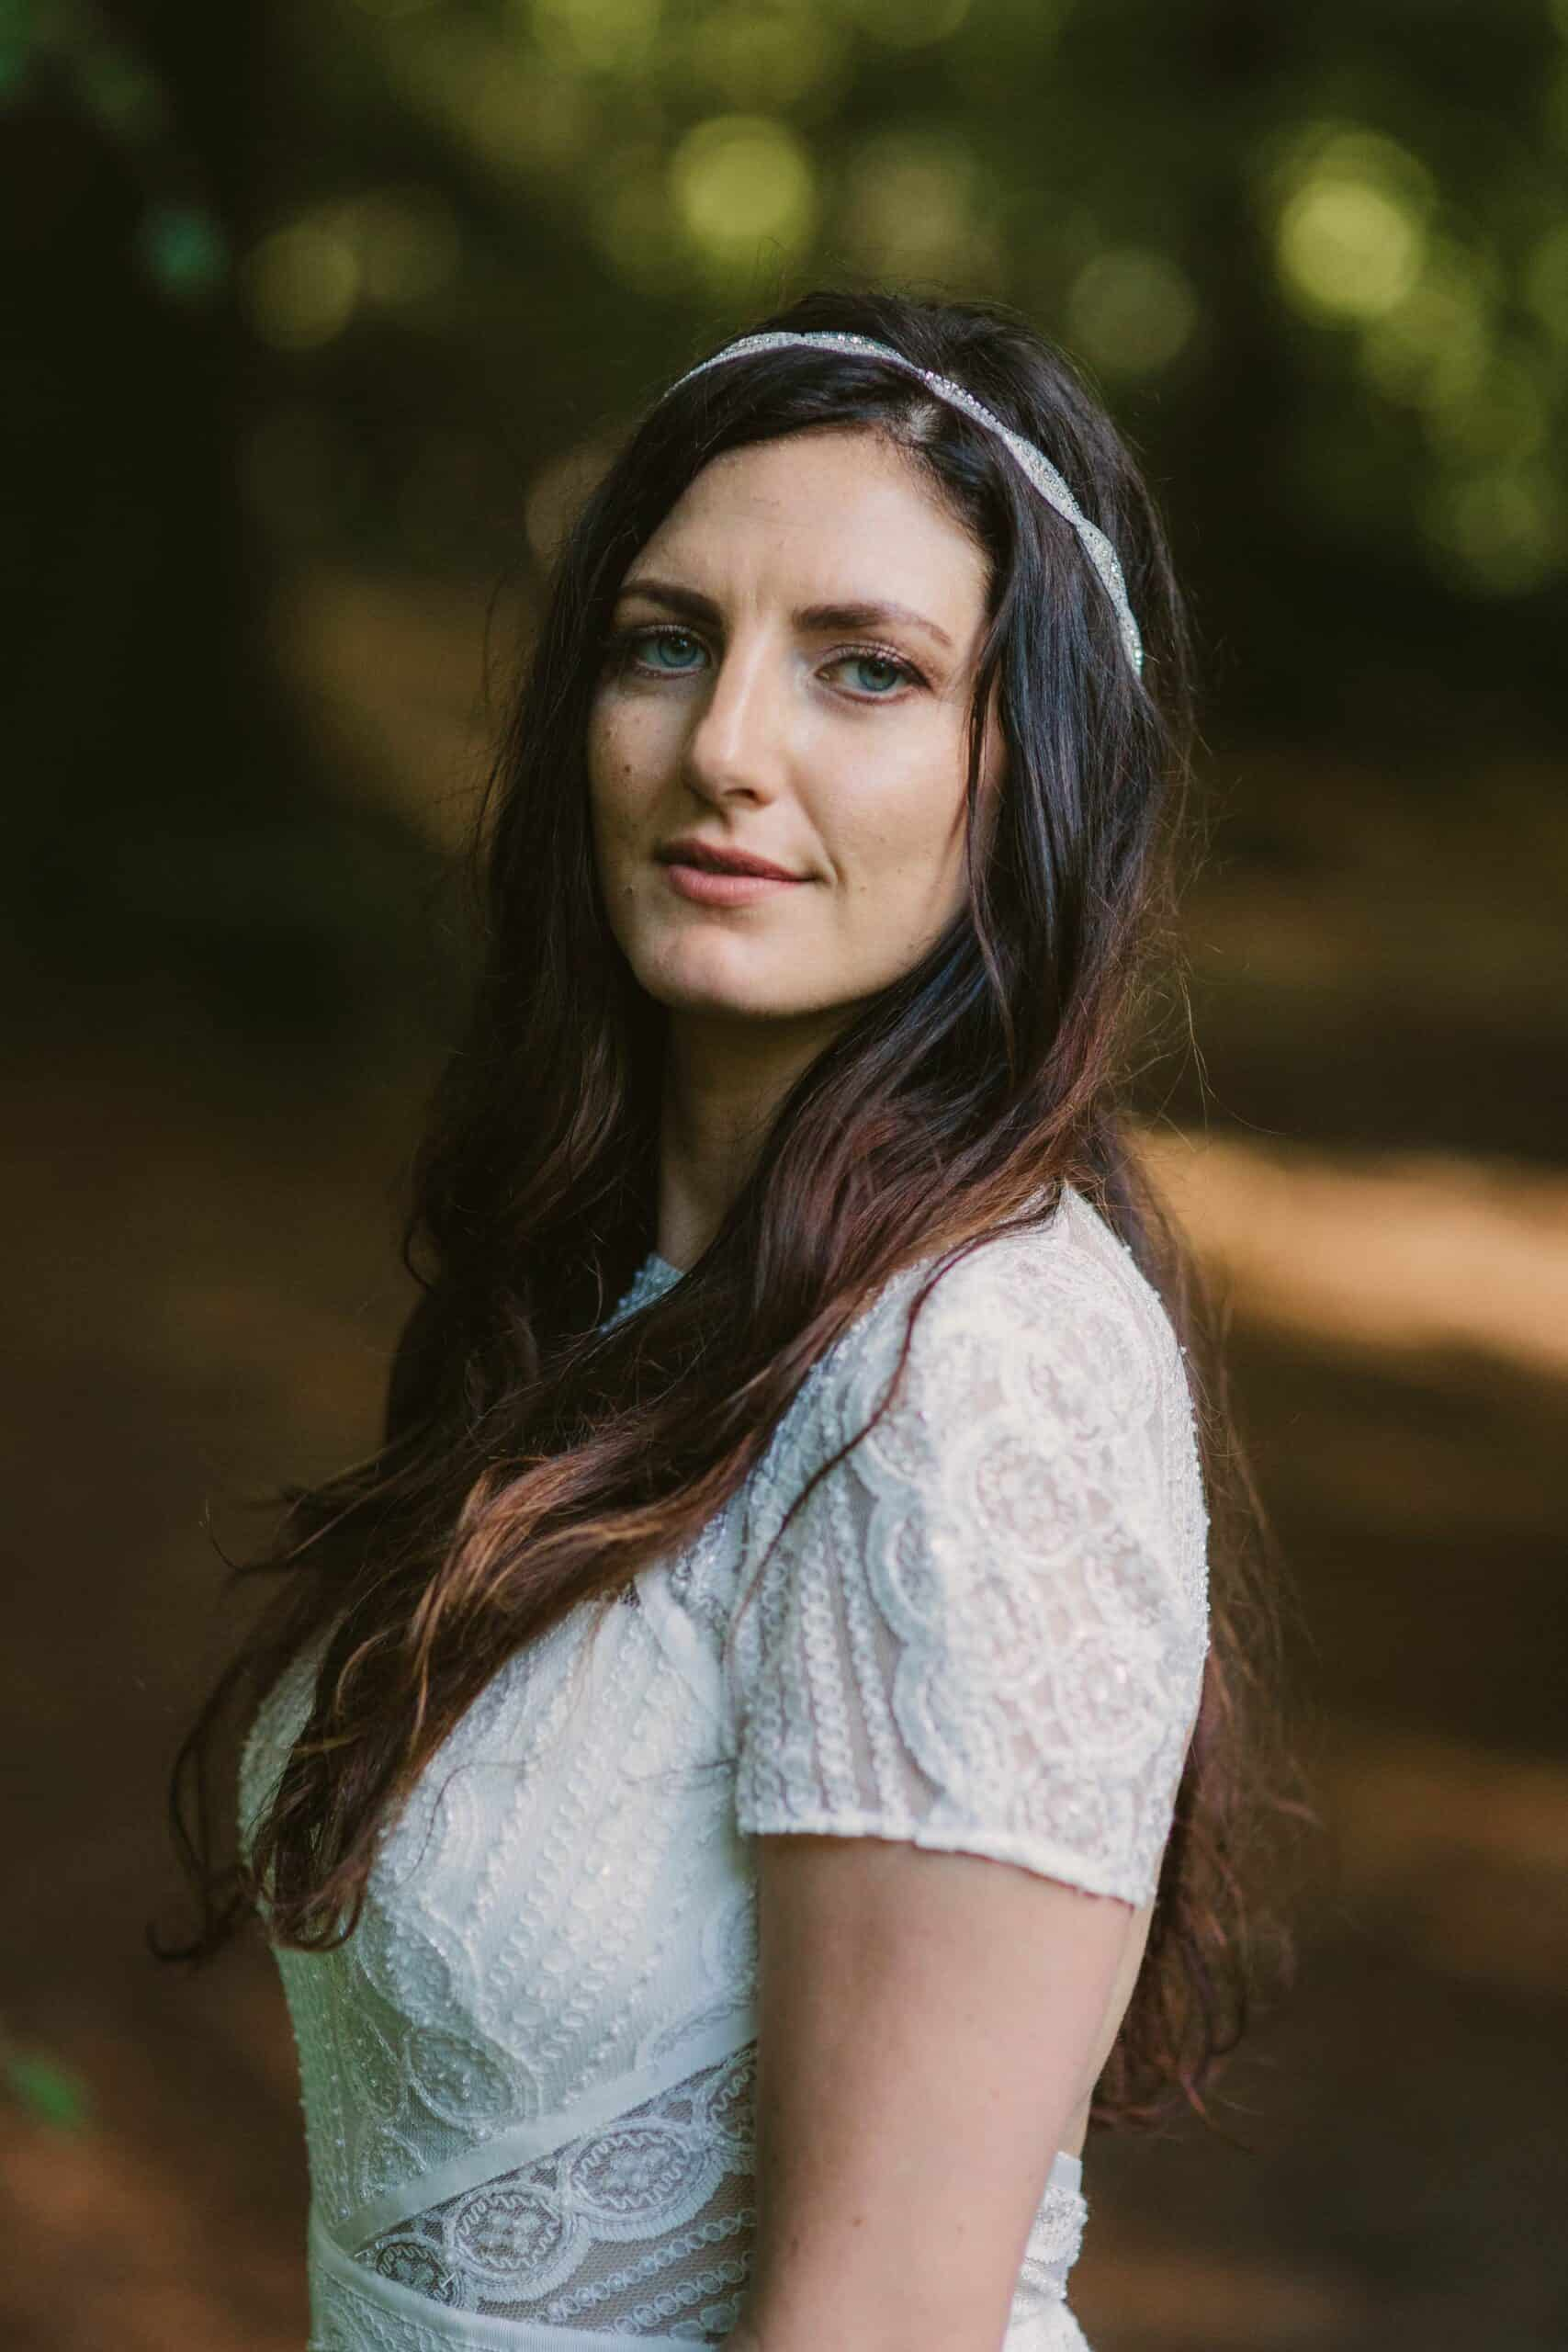 Elopement videographer Ireland, outdoor bride